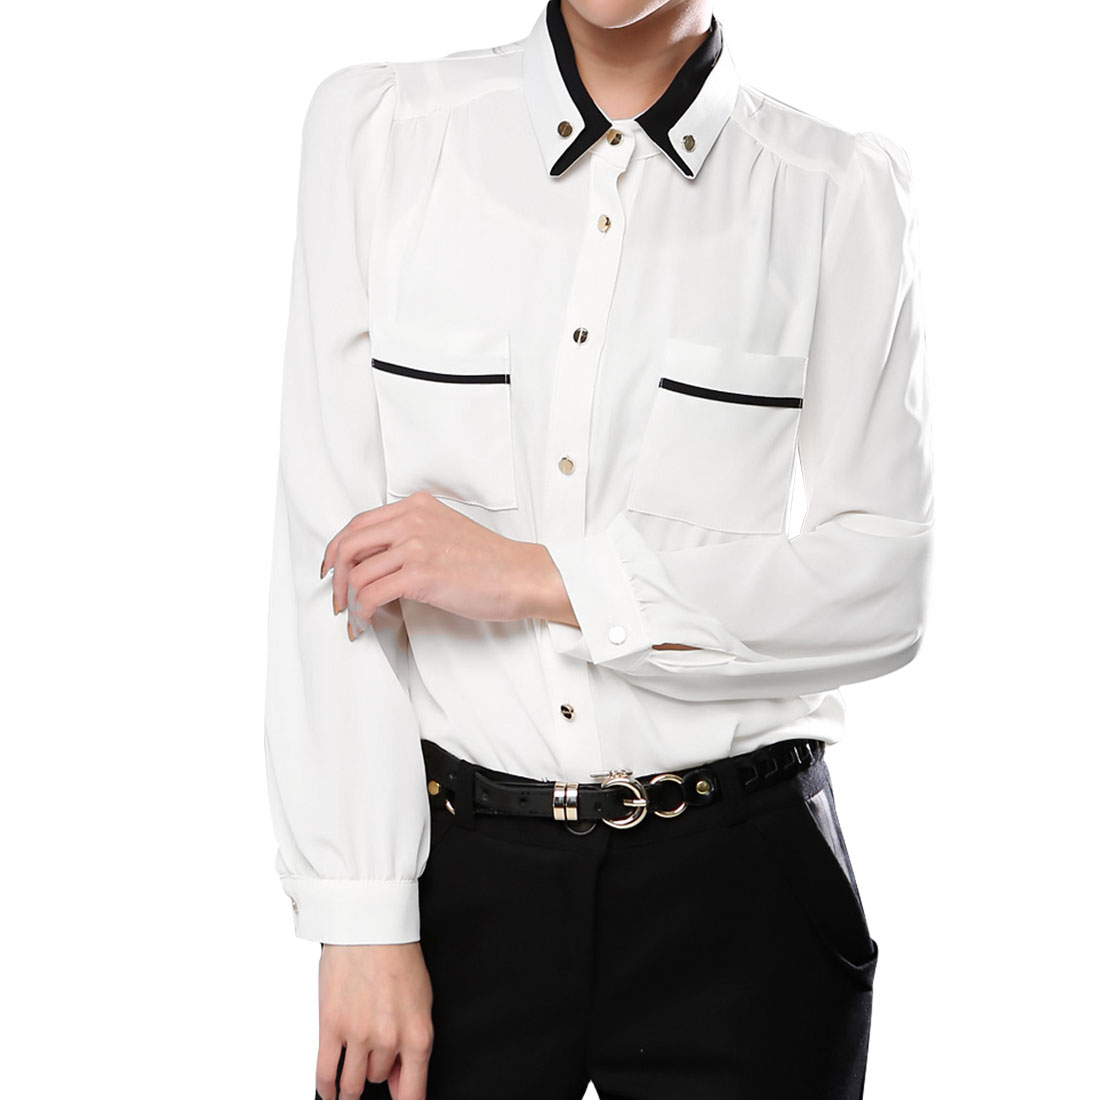 Ladies Long Sleeve Buttoned Cuff Crew Neck Chic Shirt White S